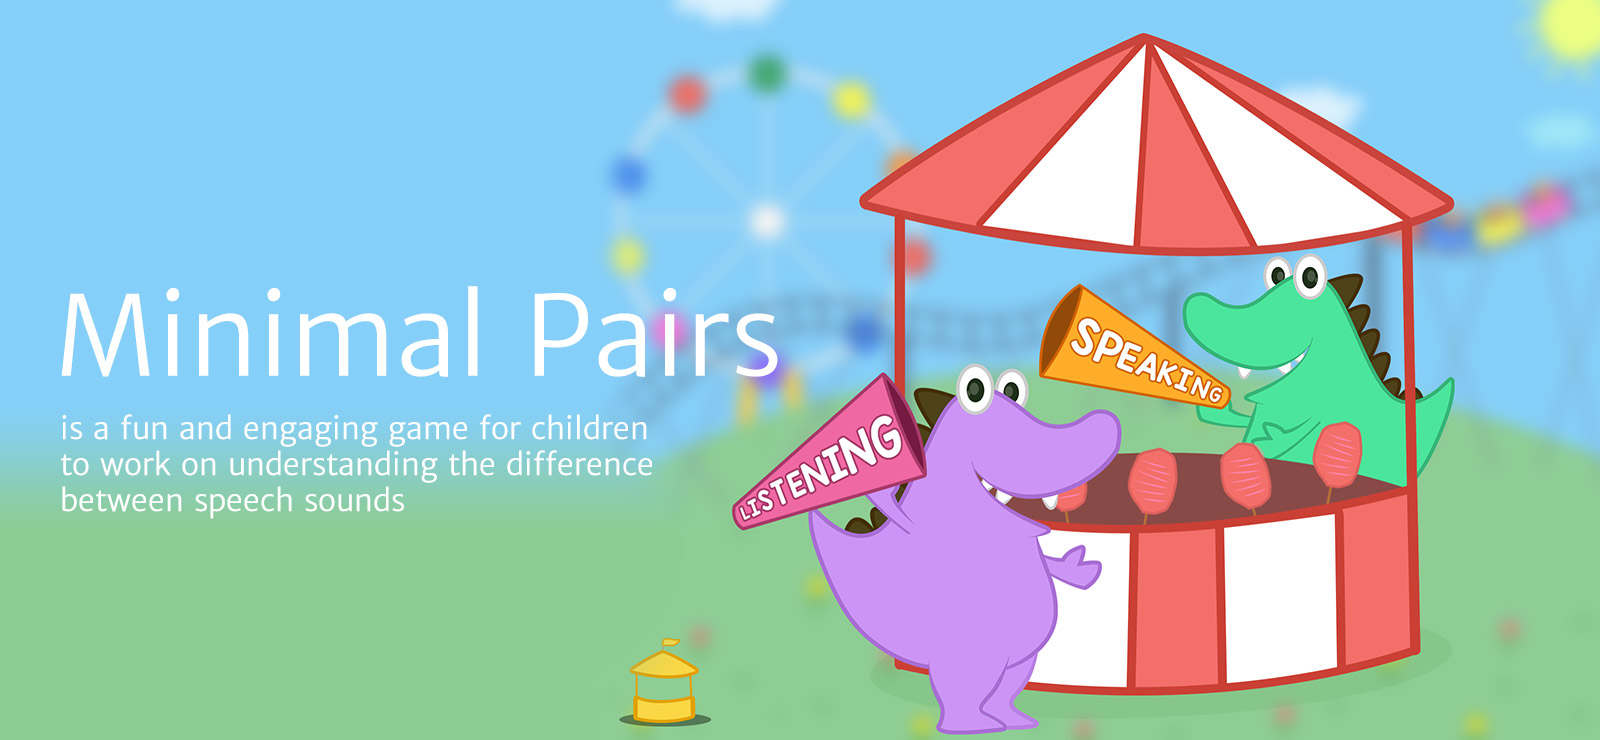 Speech sound app for minimal pair therapy